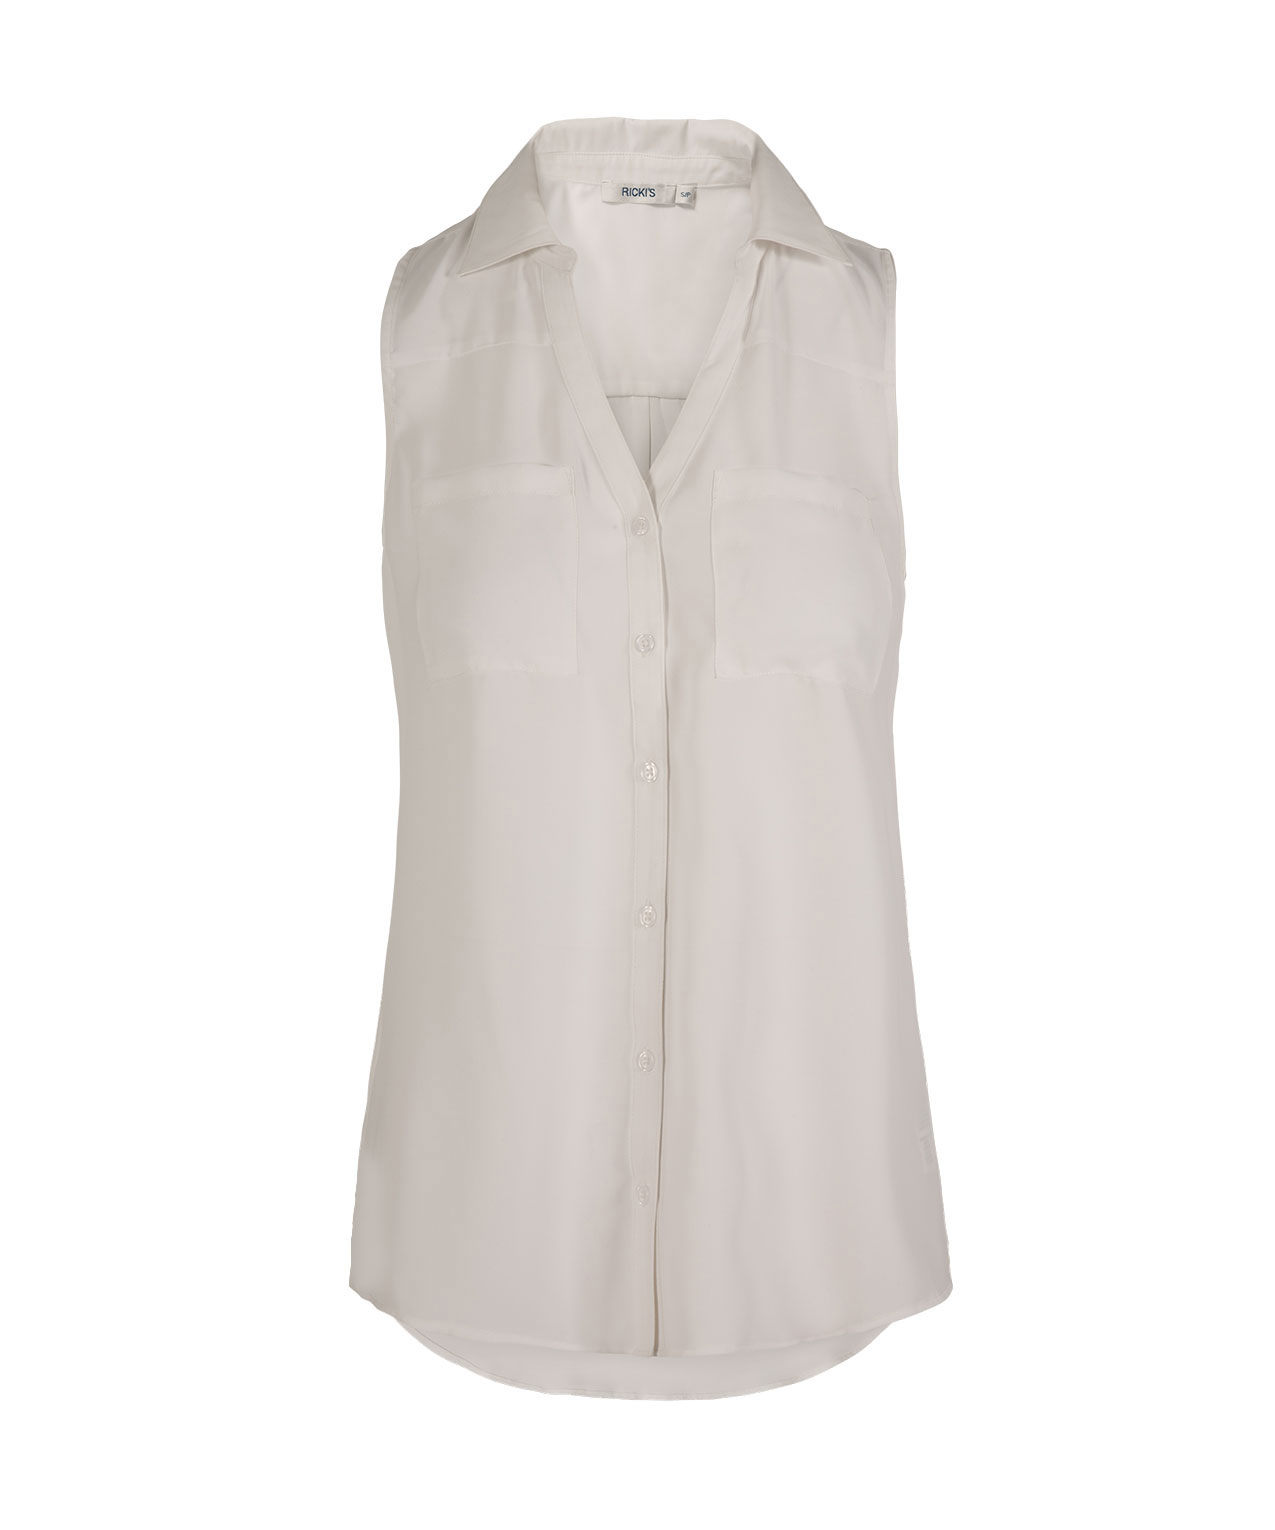 Sleeveless Collared Button Front Shirt Rickis